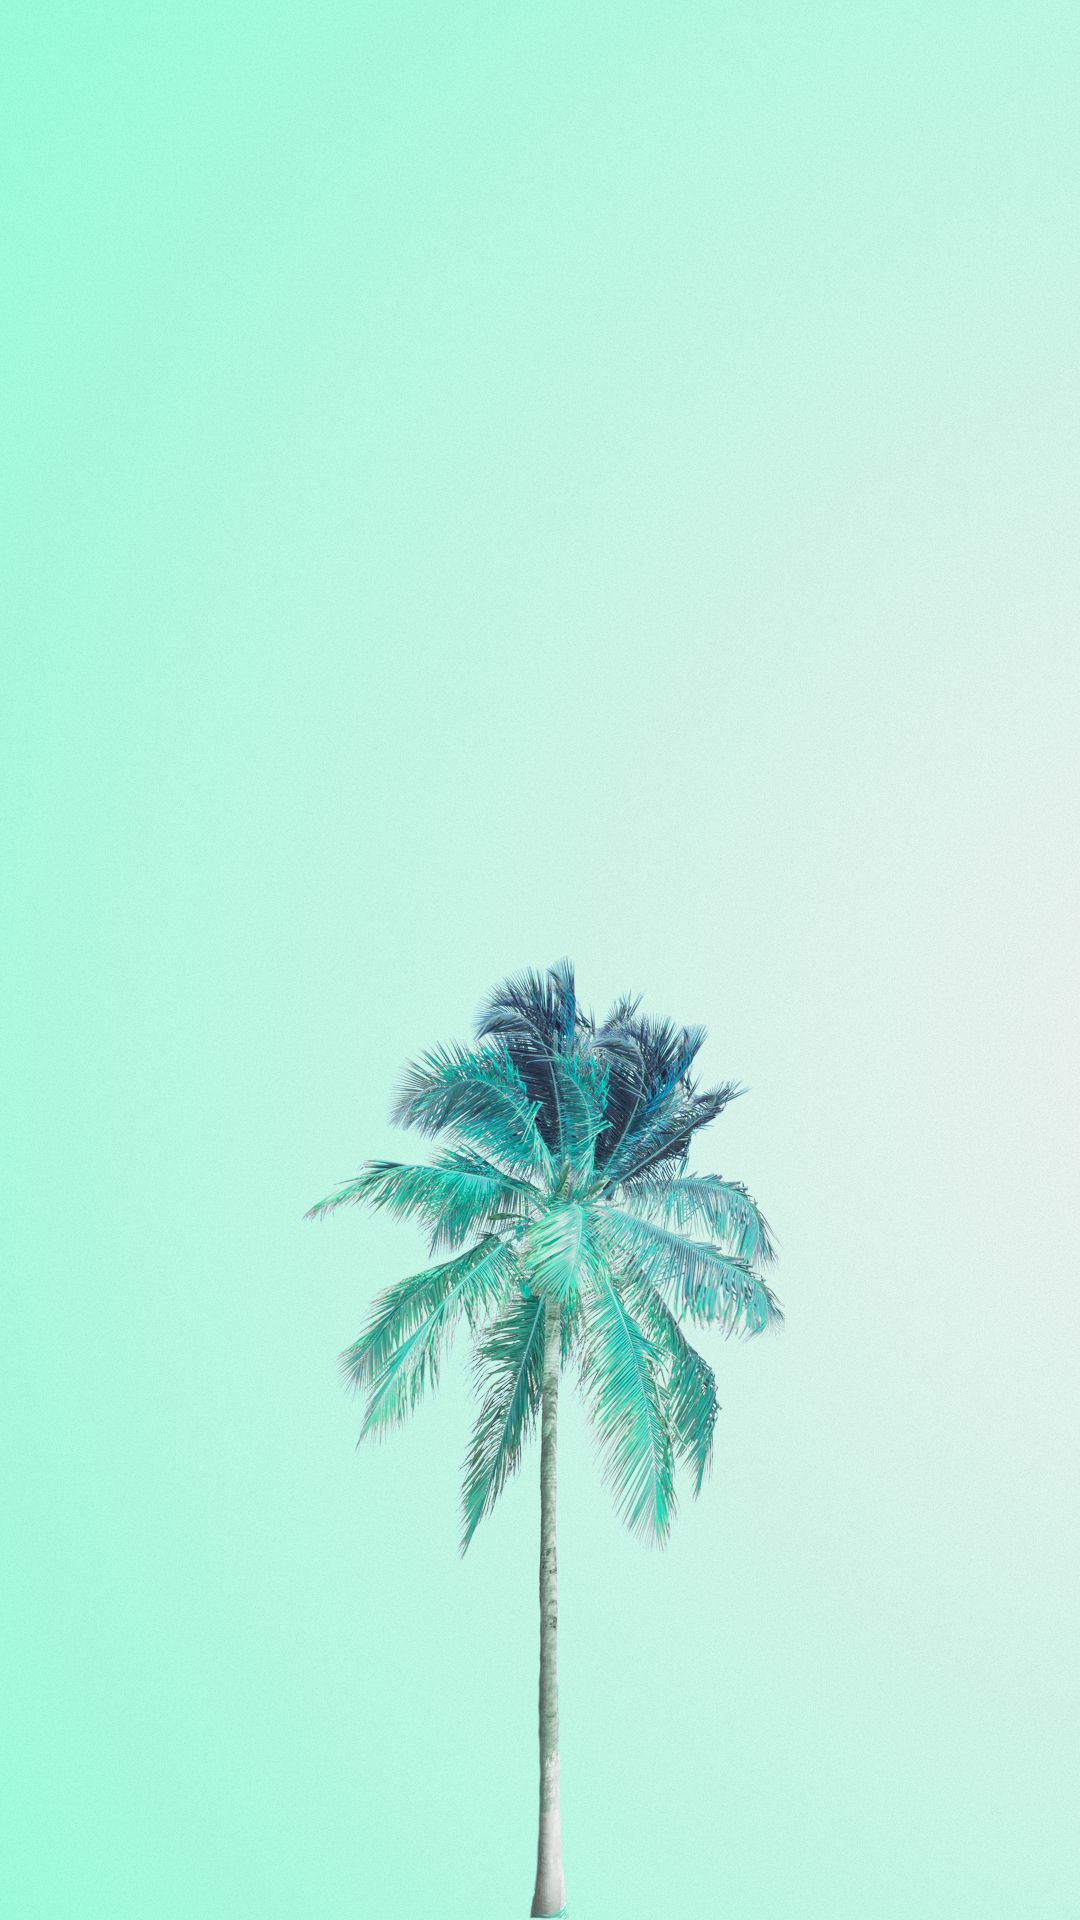 Turquoise Iphone Background In 2020 Mint Green Wallpaper Mint Green Wallpaper Iphone Palm Tree Iphone Wallpaper